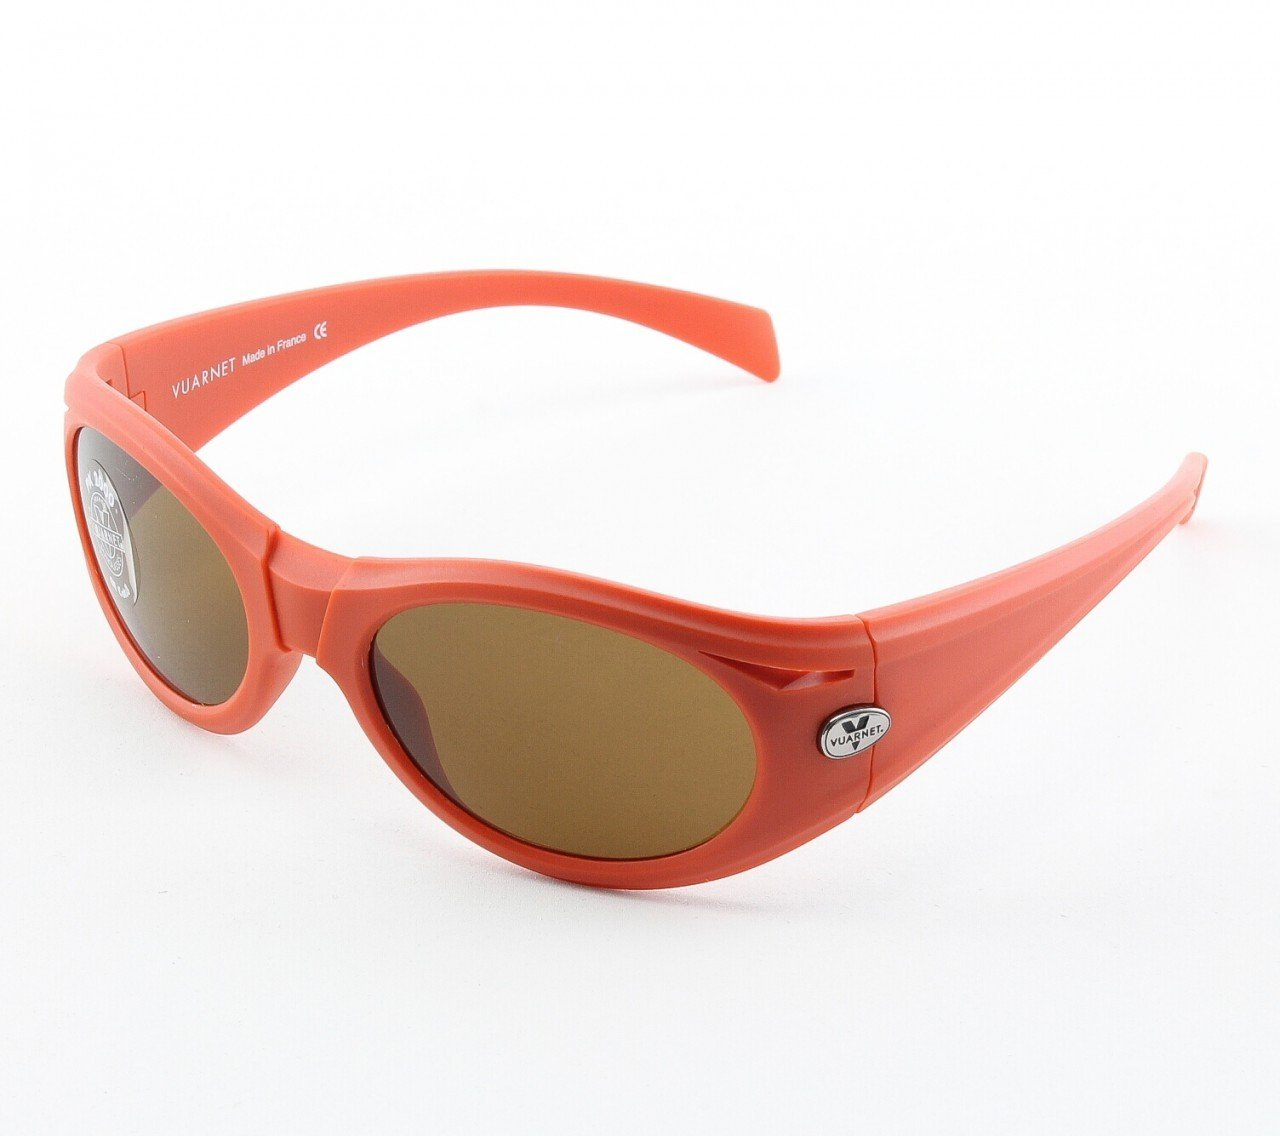 Vuarnet VL 1125 Sunglasses Col. P00H 2121 Red with Brown PX2000 Lenses